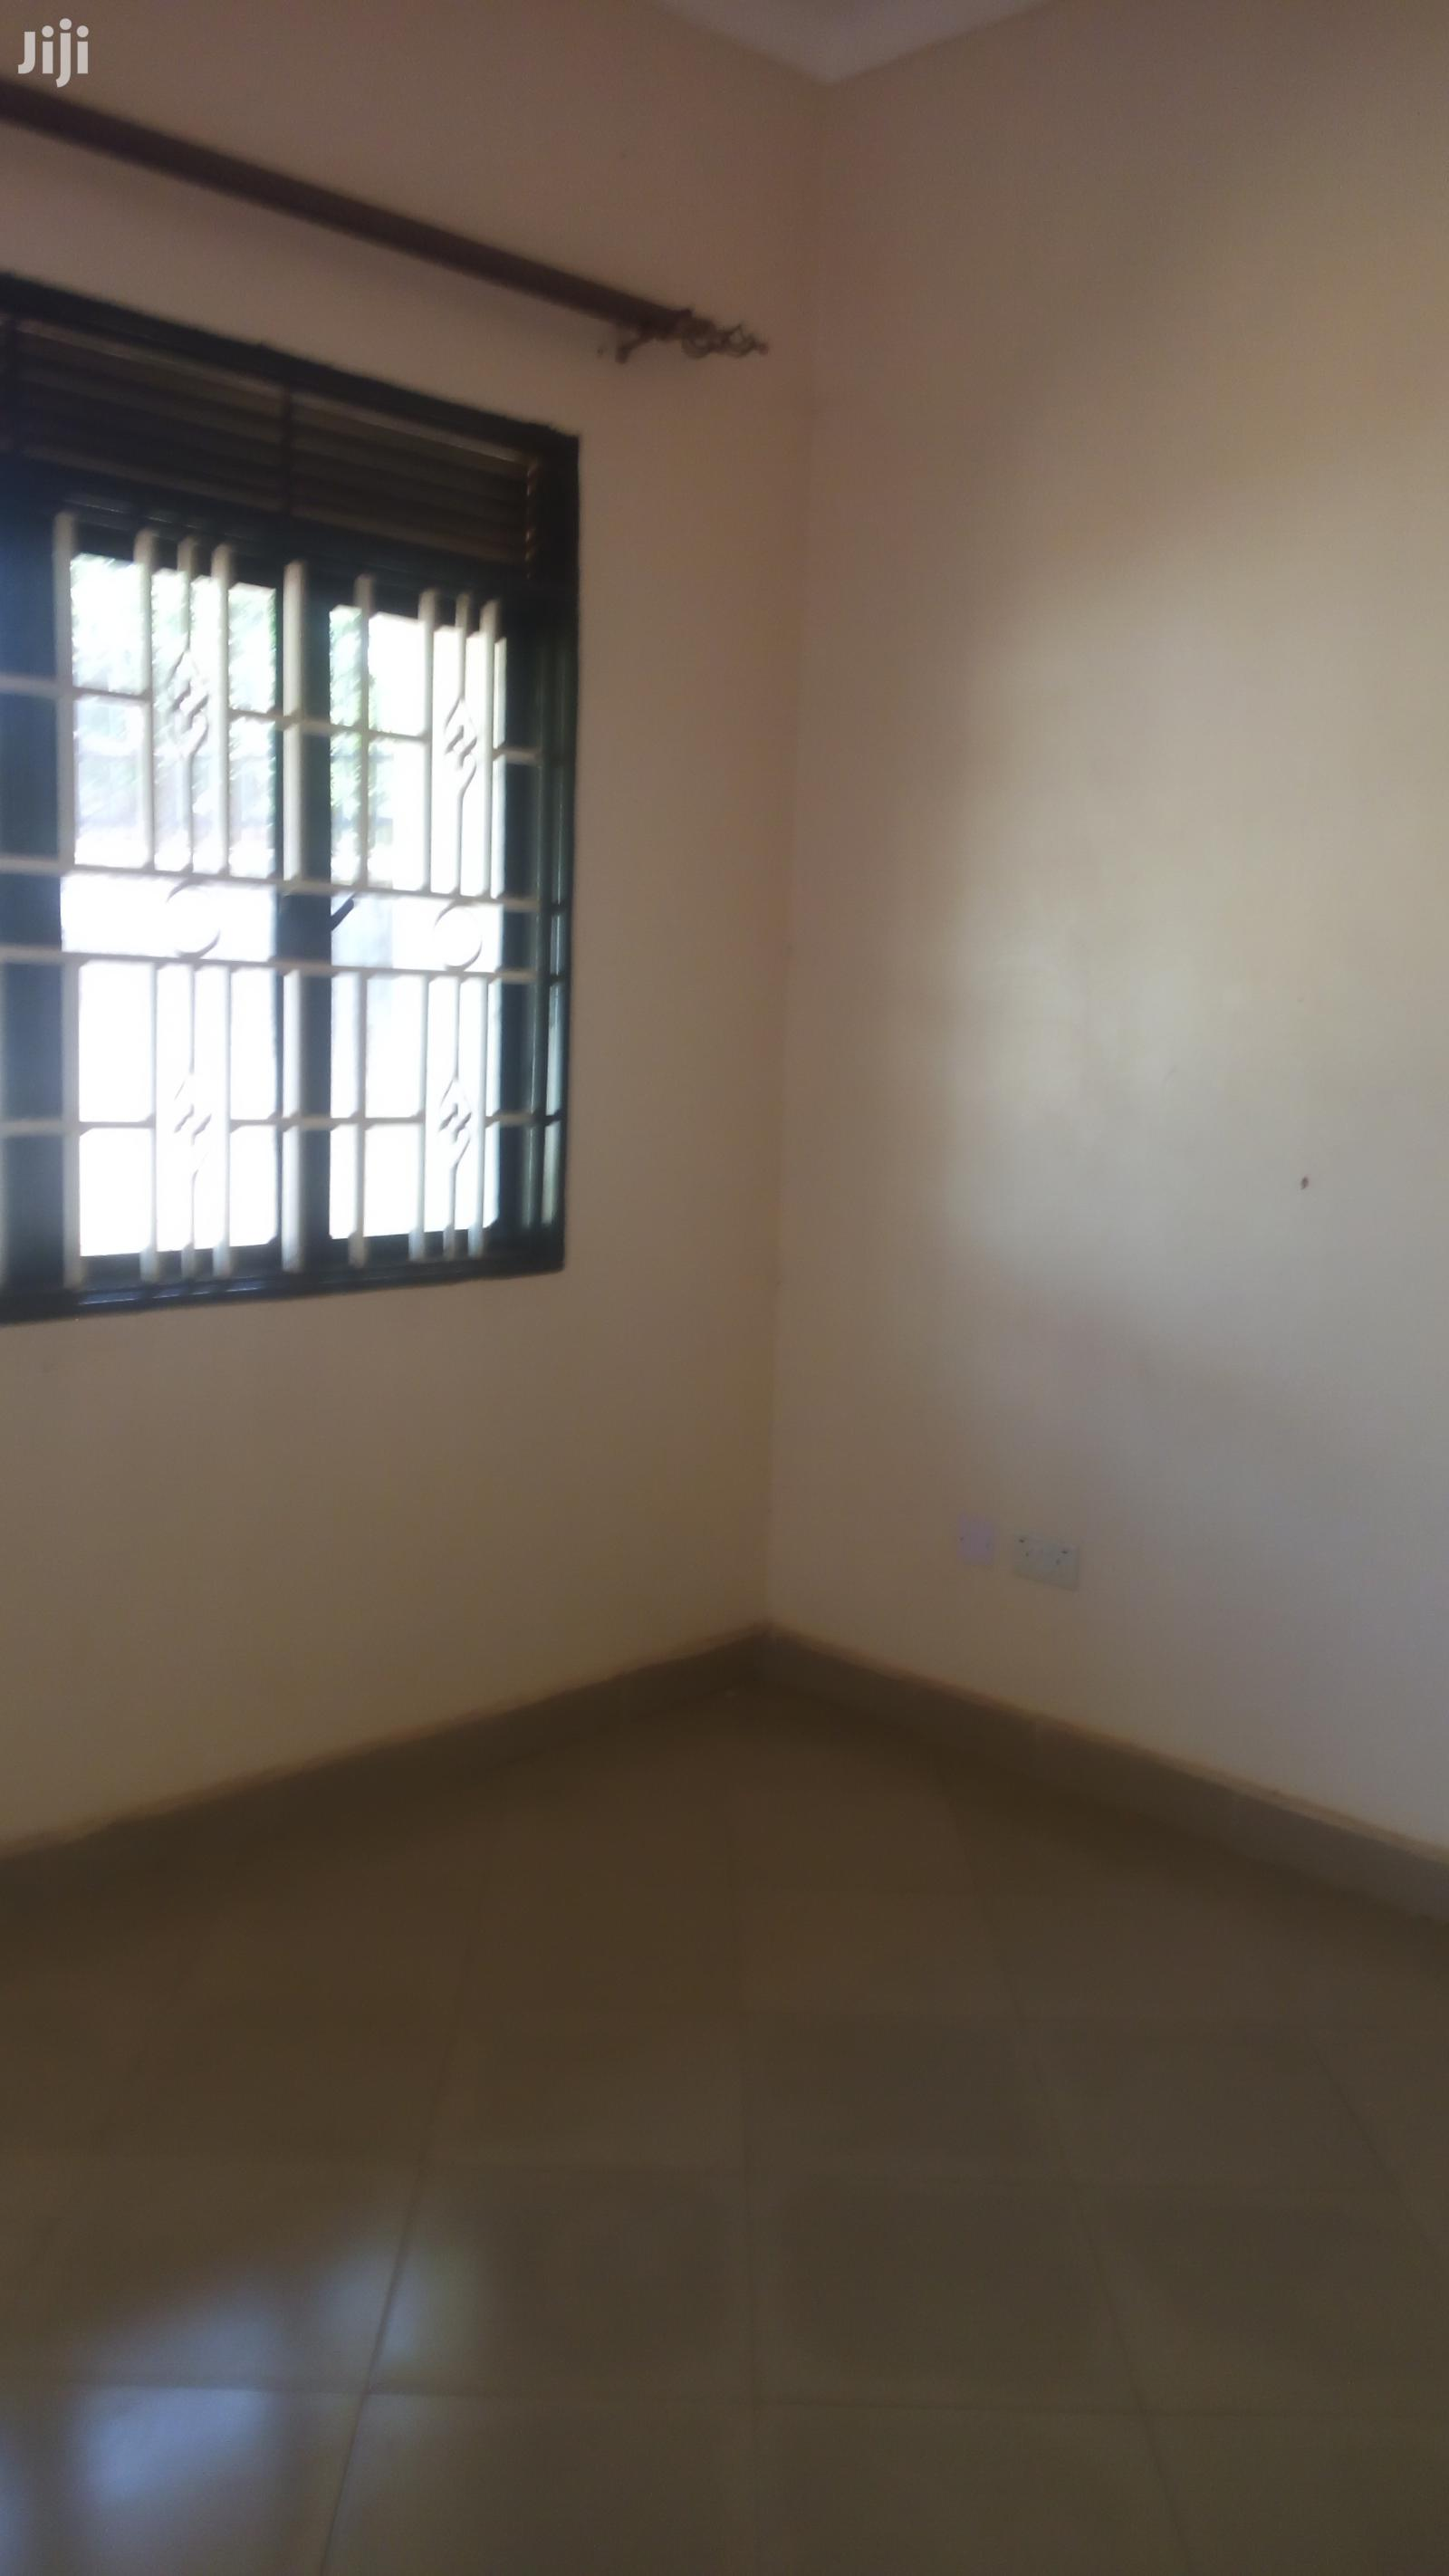 Bweyogerere 2bedroom House For Rent Self Contained Next To Main | Houses & Apartments For Rent for sale in Kampala, Central Region, Uganda